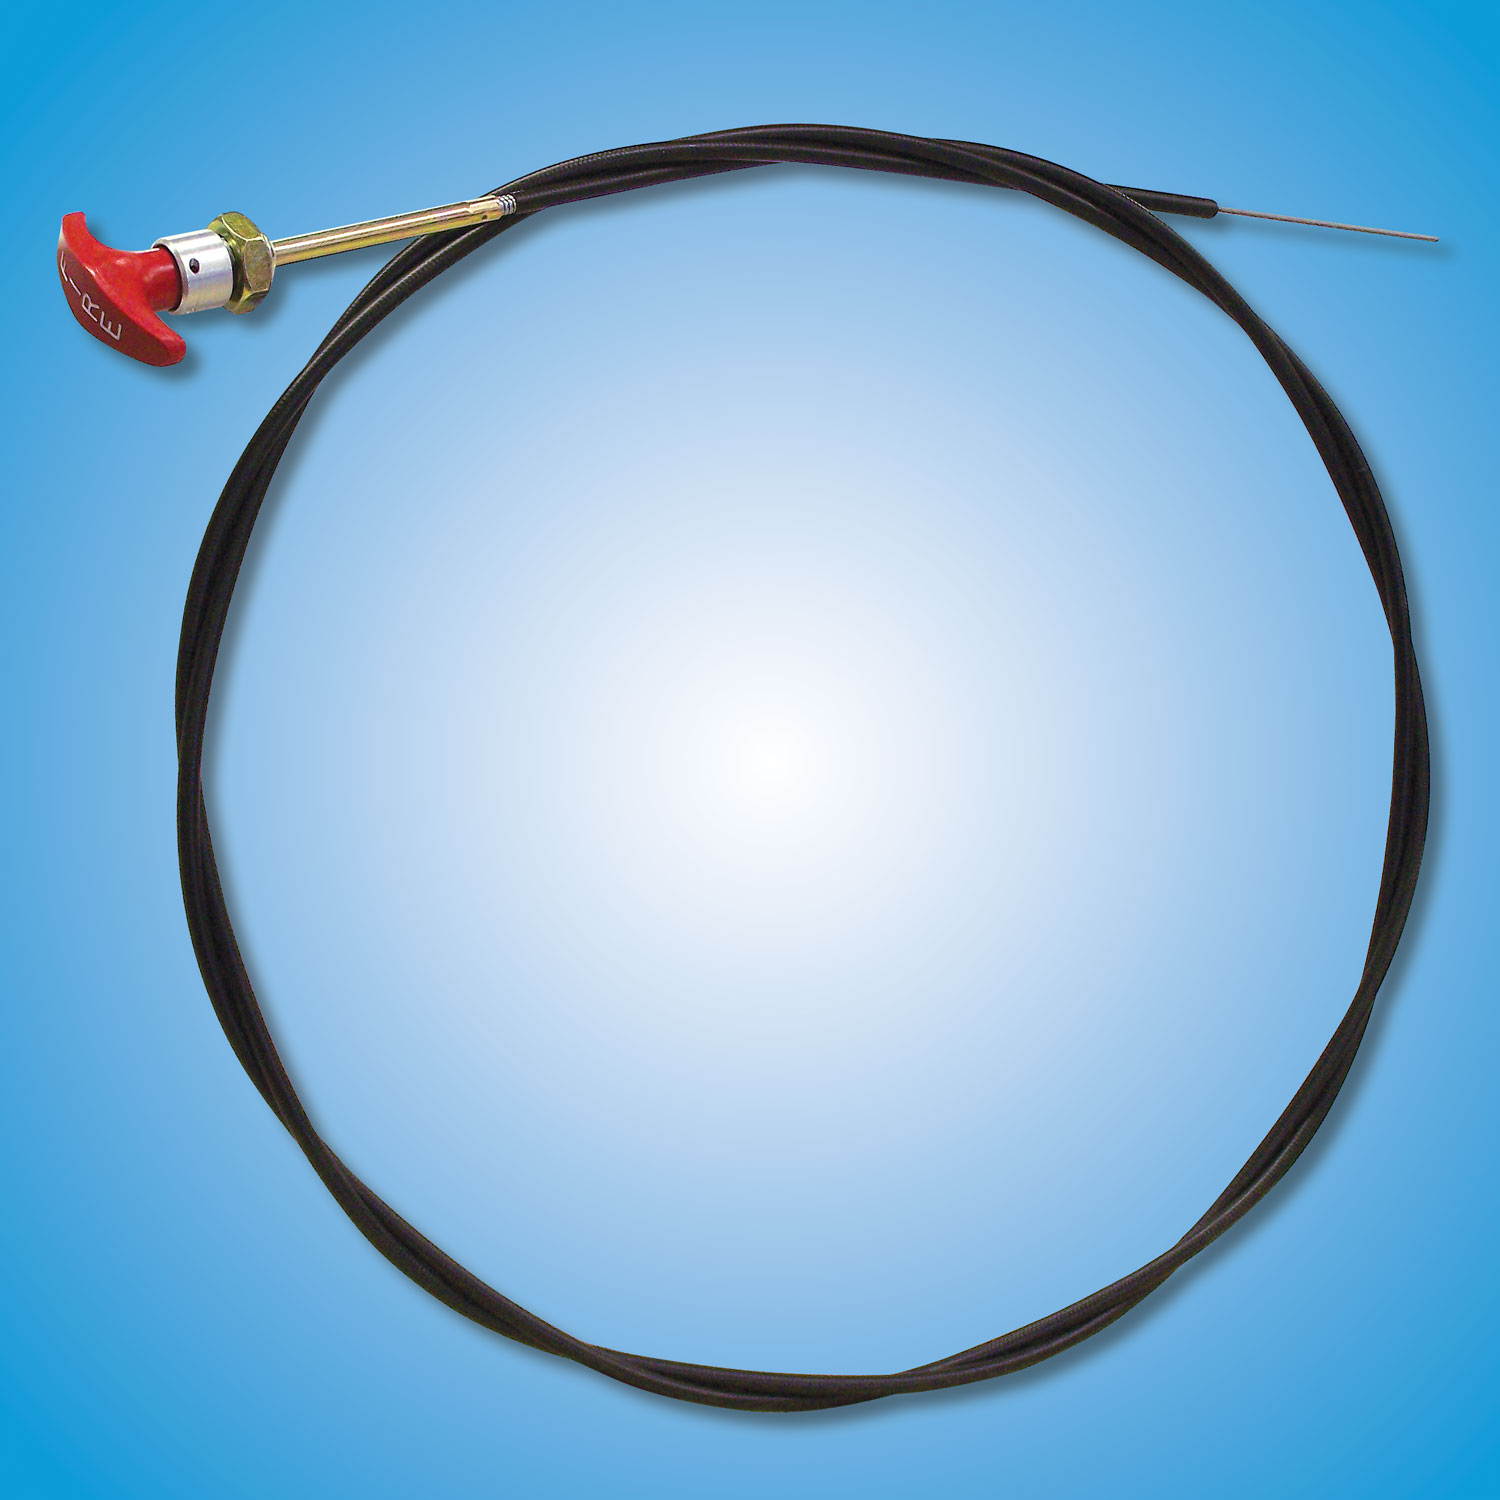 8 Foot Pull Cable  Part #FBCAB9045 — $42   15 Foot Pull Cable  Part #FBCAB9046 — $71